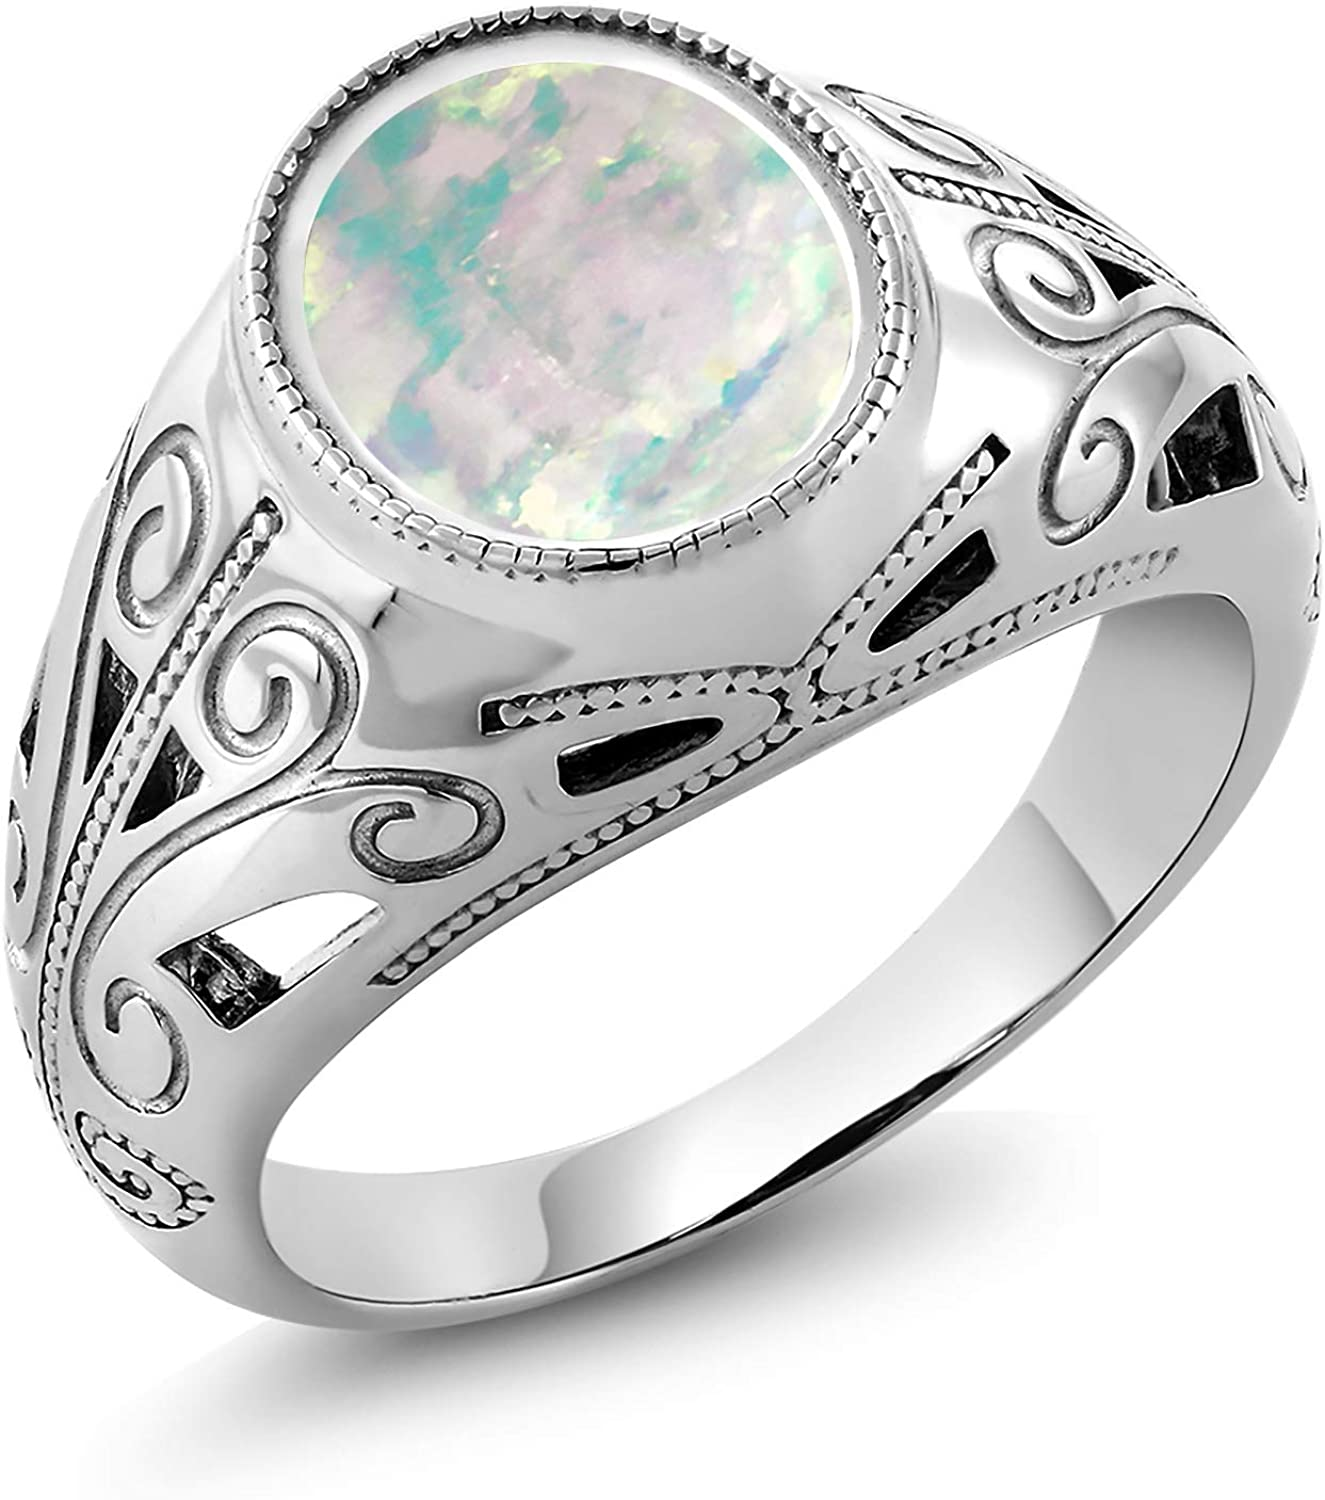 Gem Stone King 925 Sterling Silver Oval White Simulated Opal Men's Ring 4.00 Ct (Available 7,8,9,10,11,12,13)